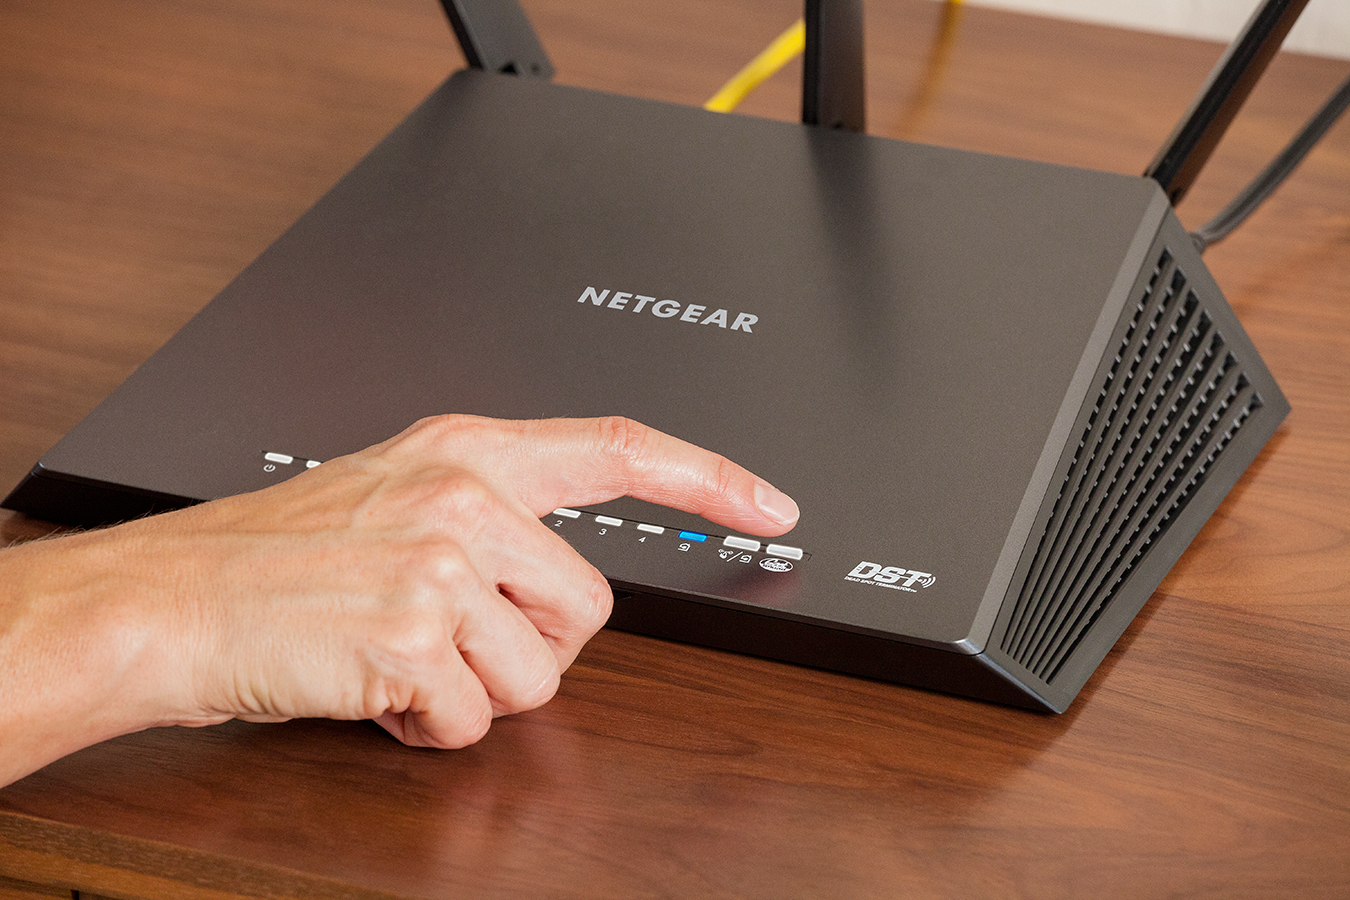 r7300dst wifi routers networking home netgear setup support via web